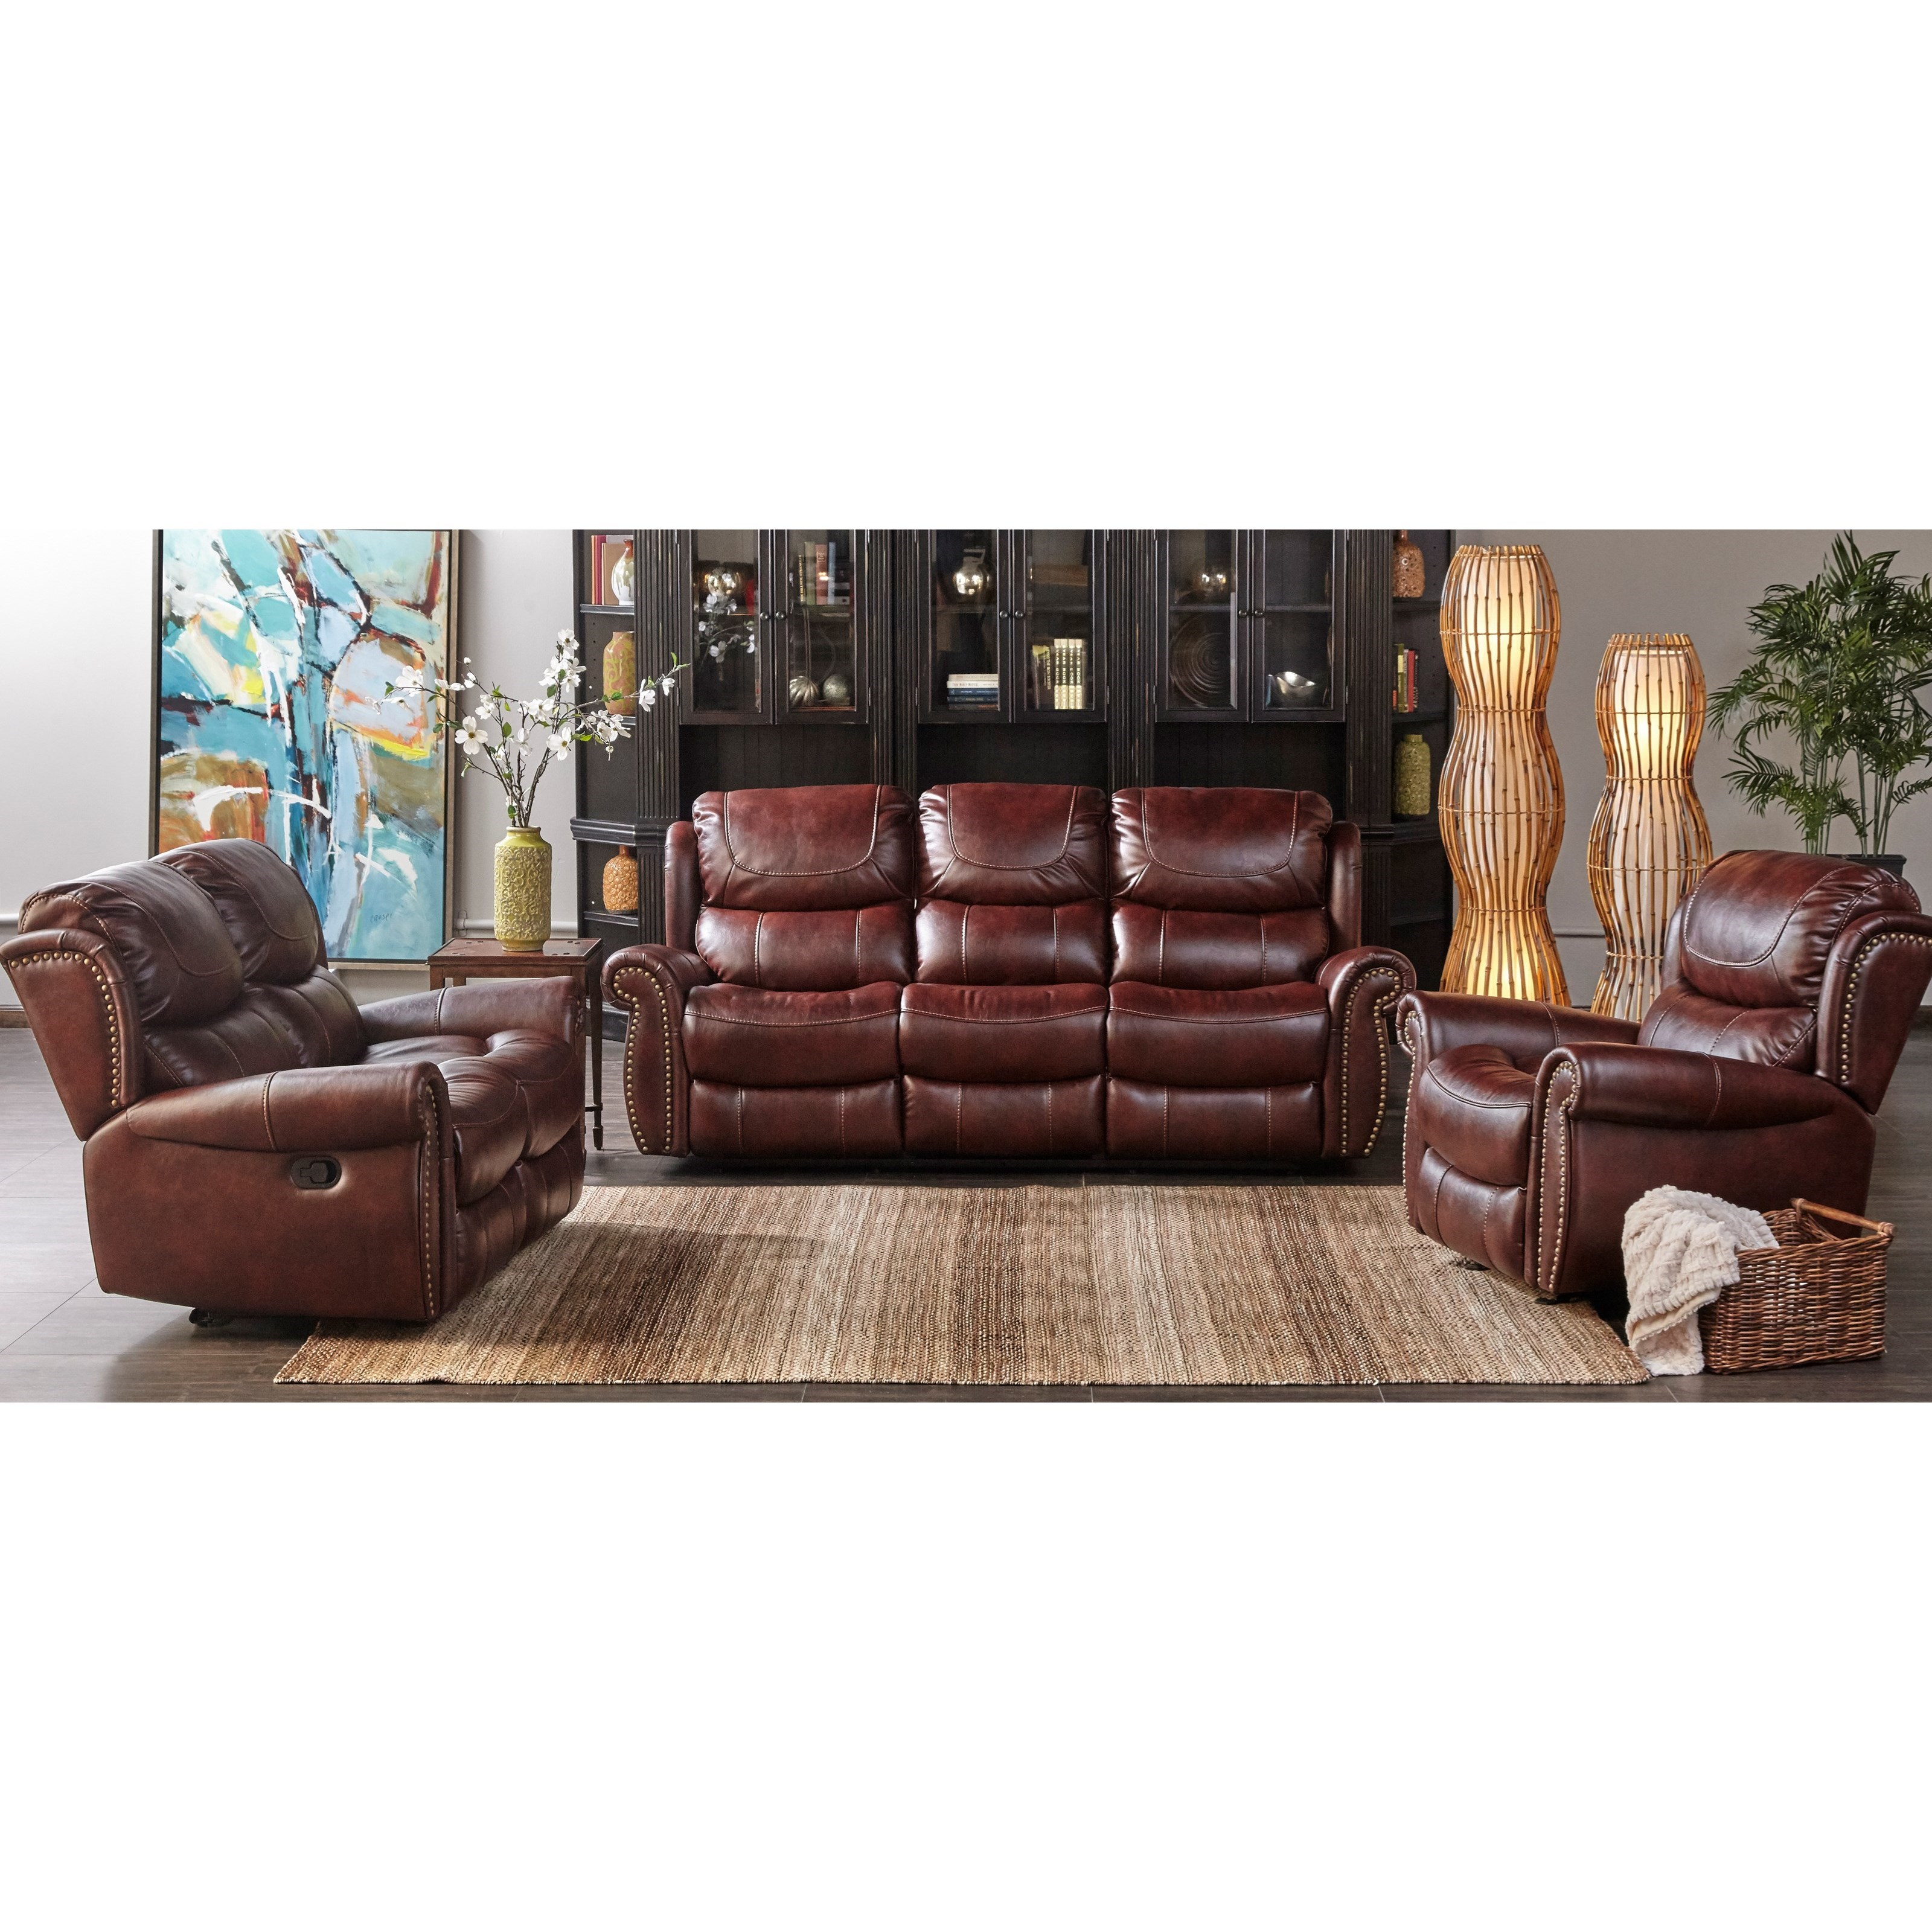 Cheers Sofa Xw1012m Qs Xw1012m L1 1k Glider Recliner With Nailhead Trim Household Furniture